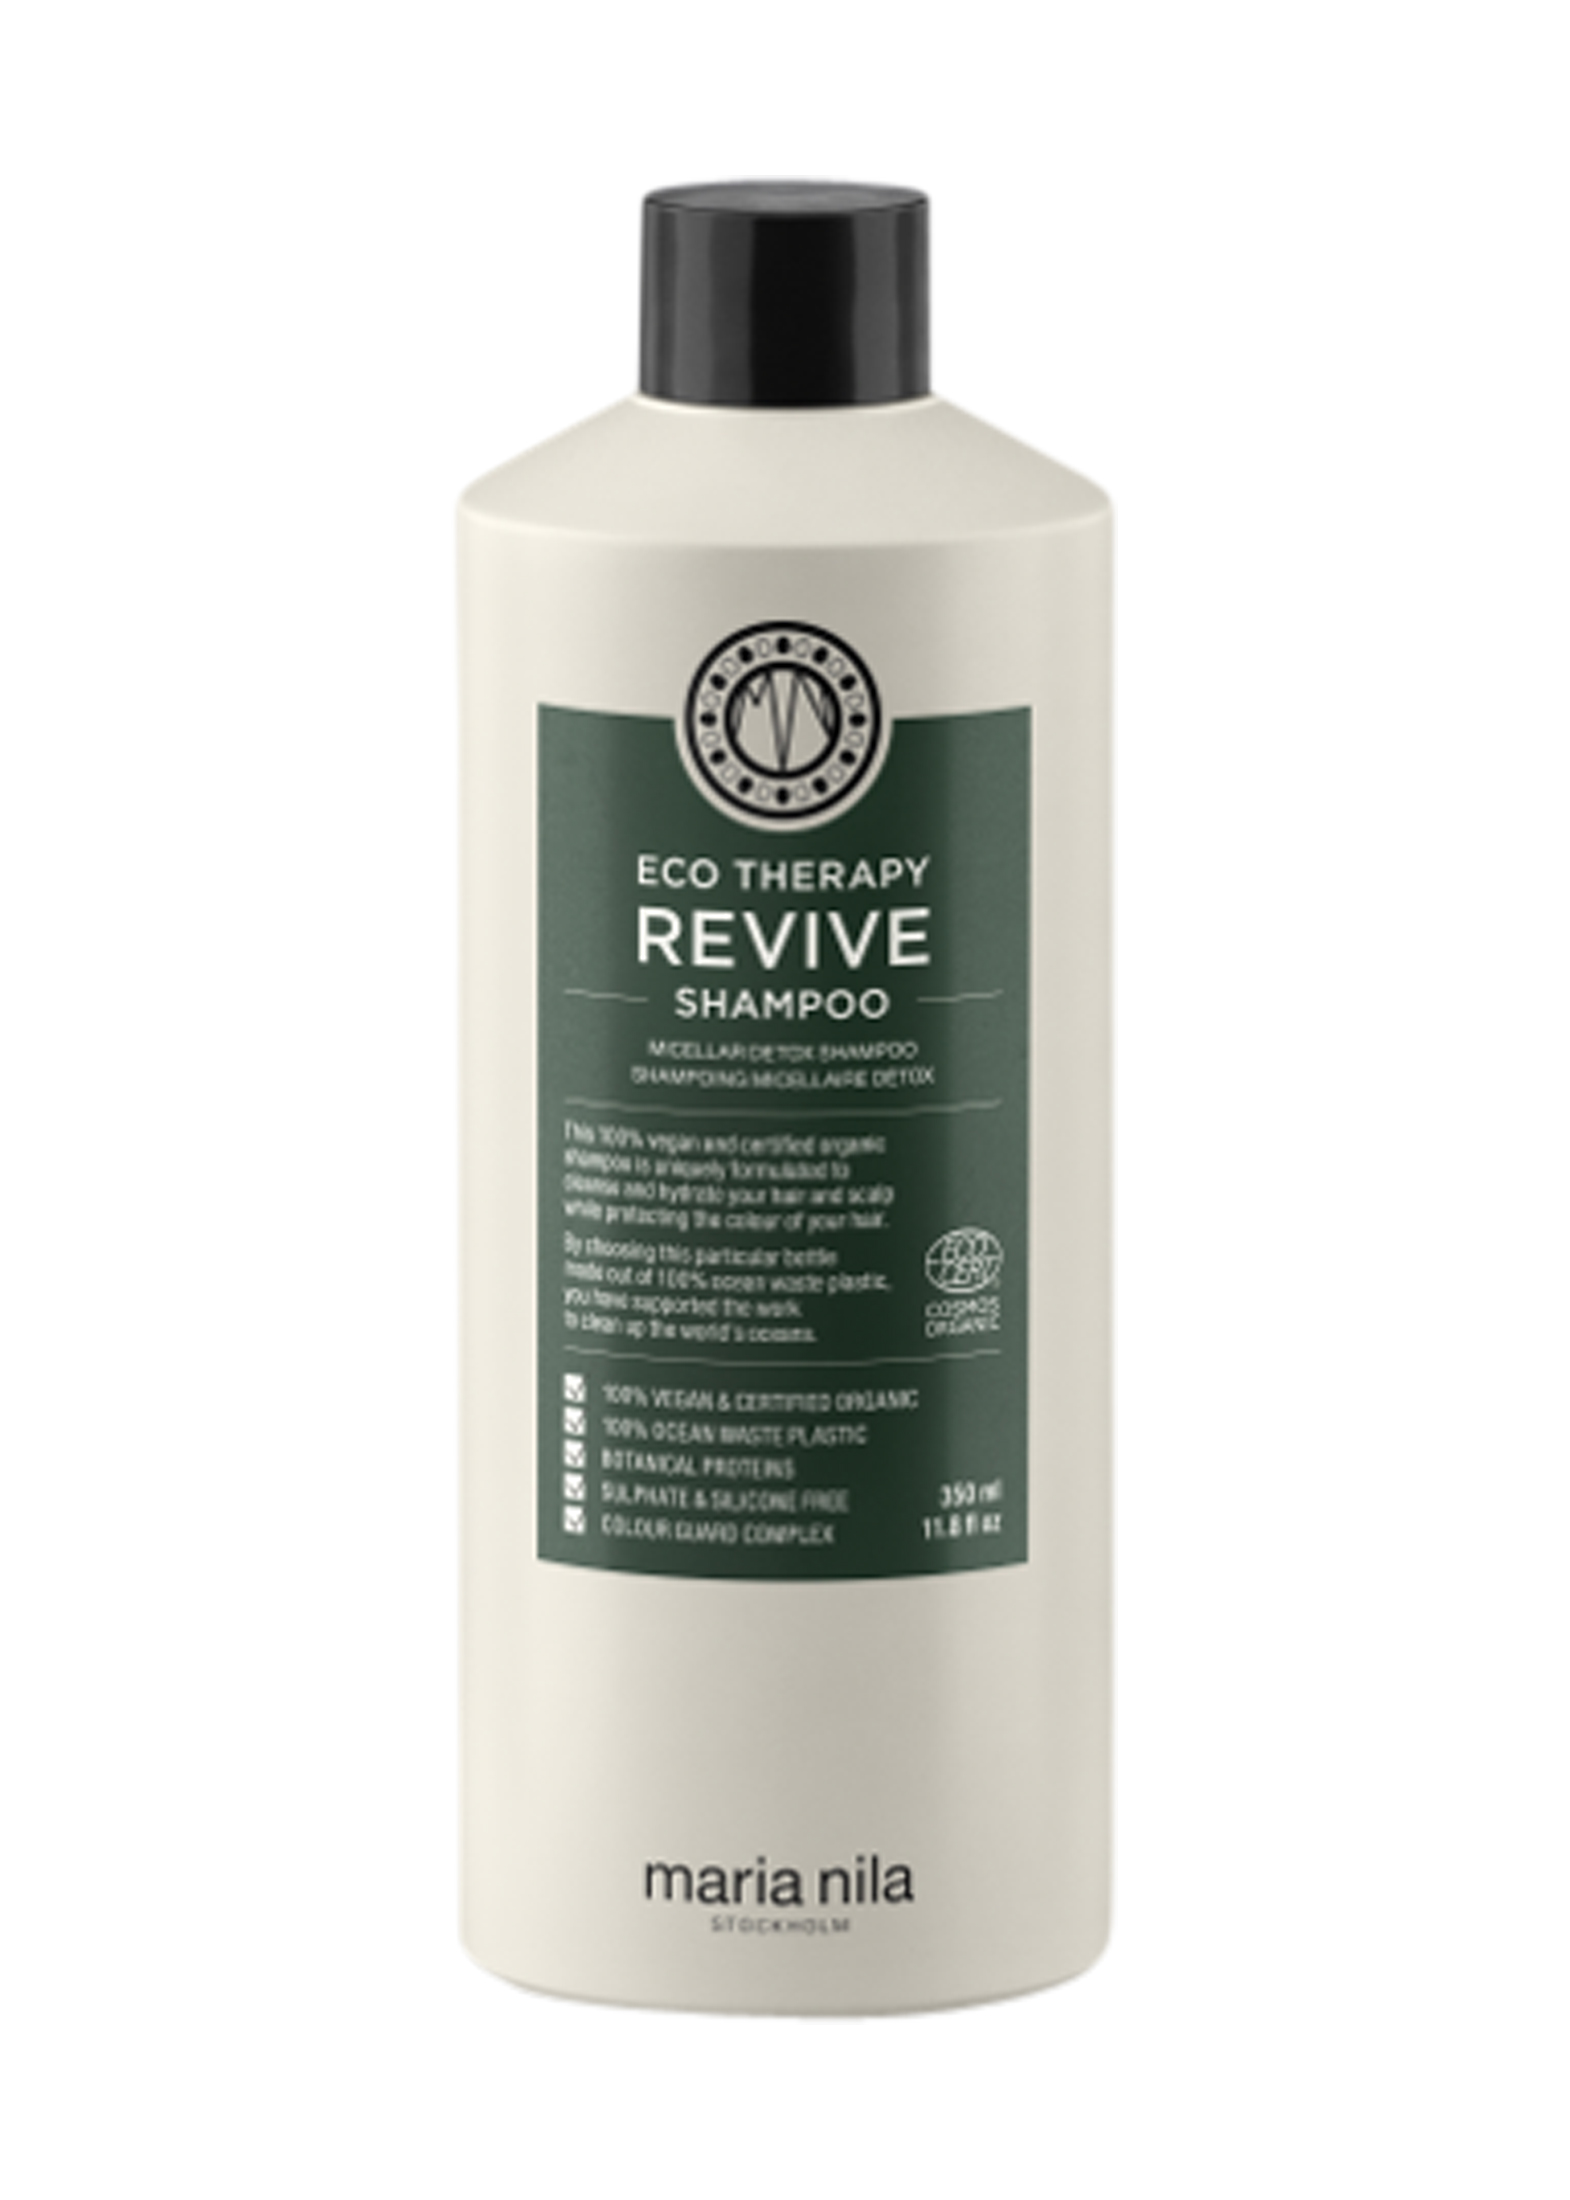 Eco Therapy Revive Shampoo 350ml image number 0